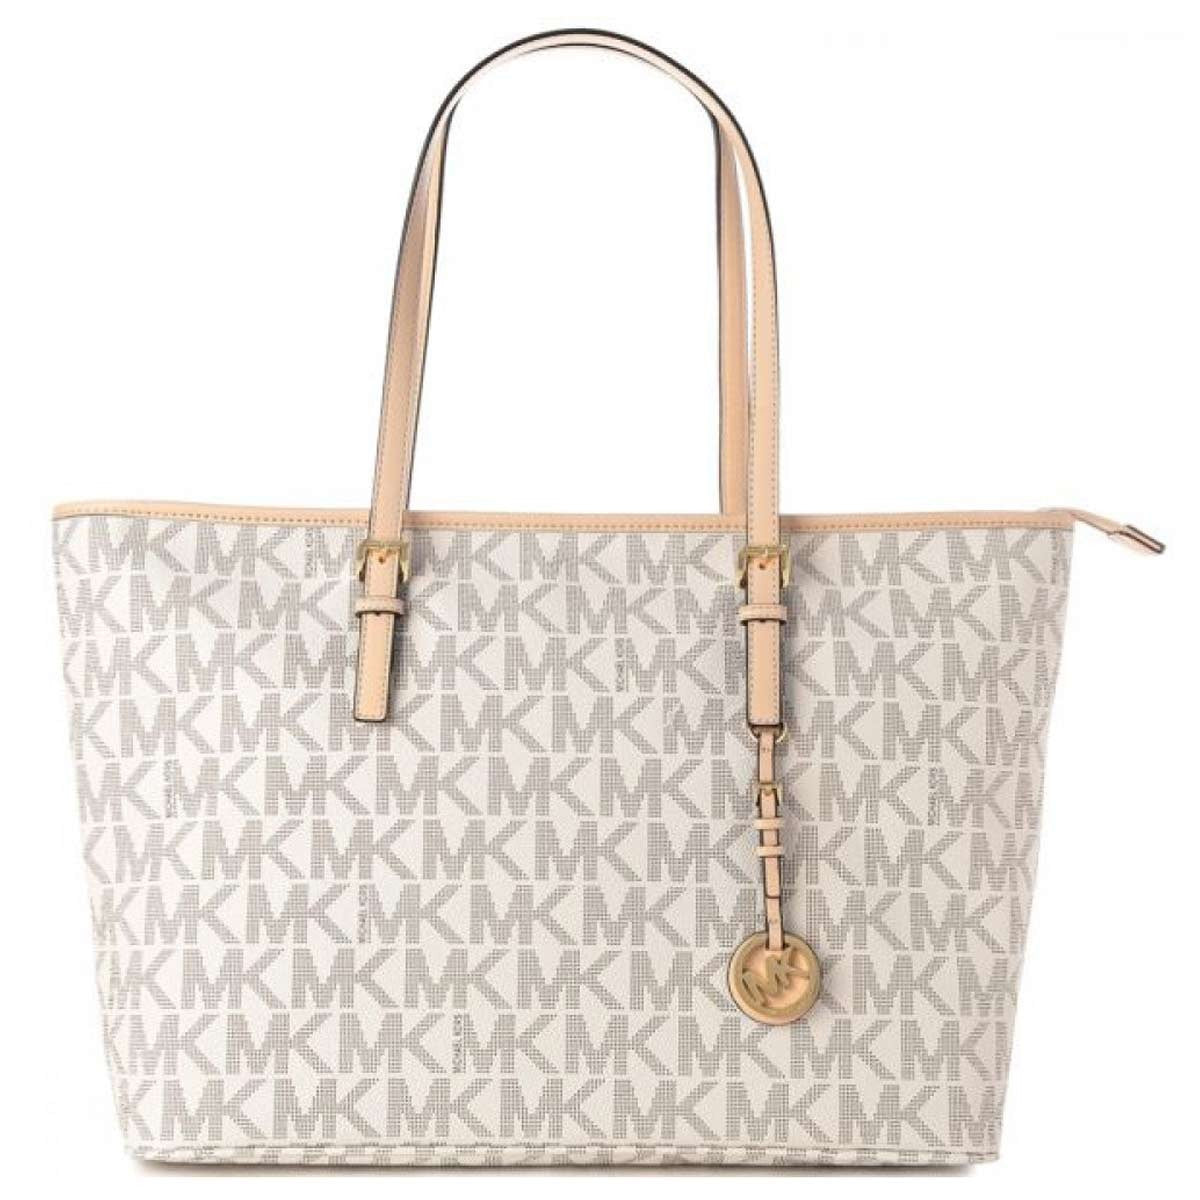 Michael Kors 30T5GTVT2B-150 Women's Jet Set Vanilla PVC Large Shoulder Tote